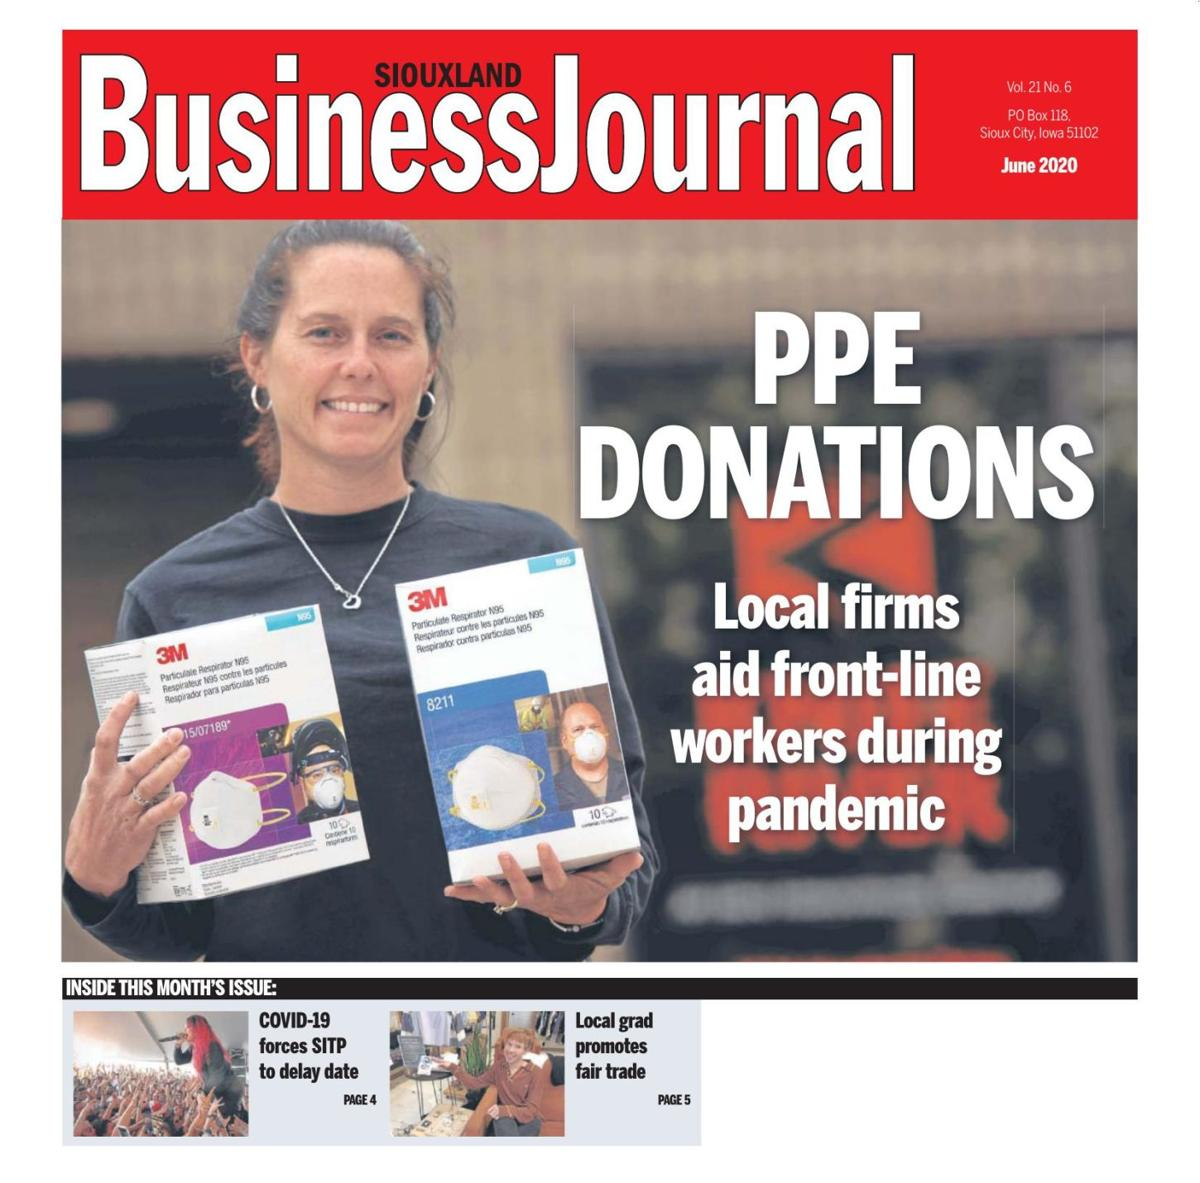 Business Journal - June 2020